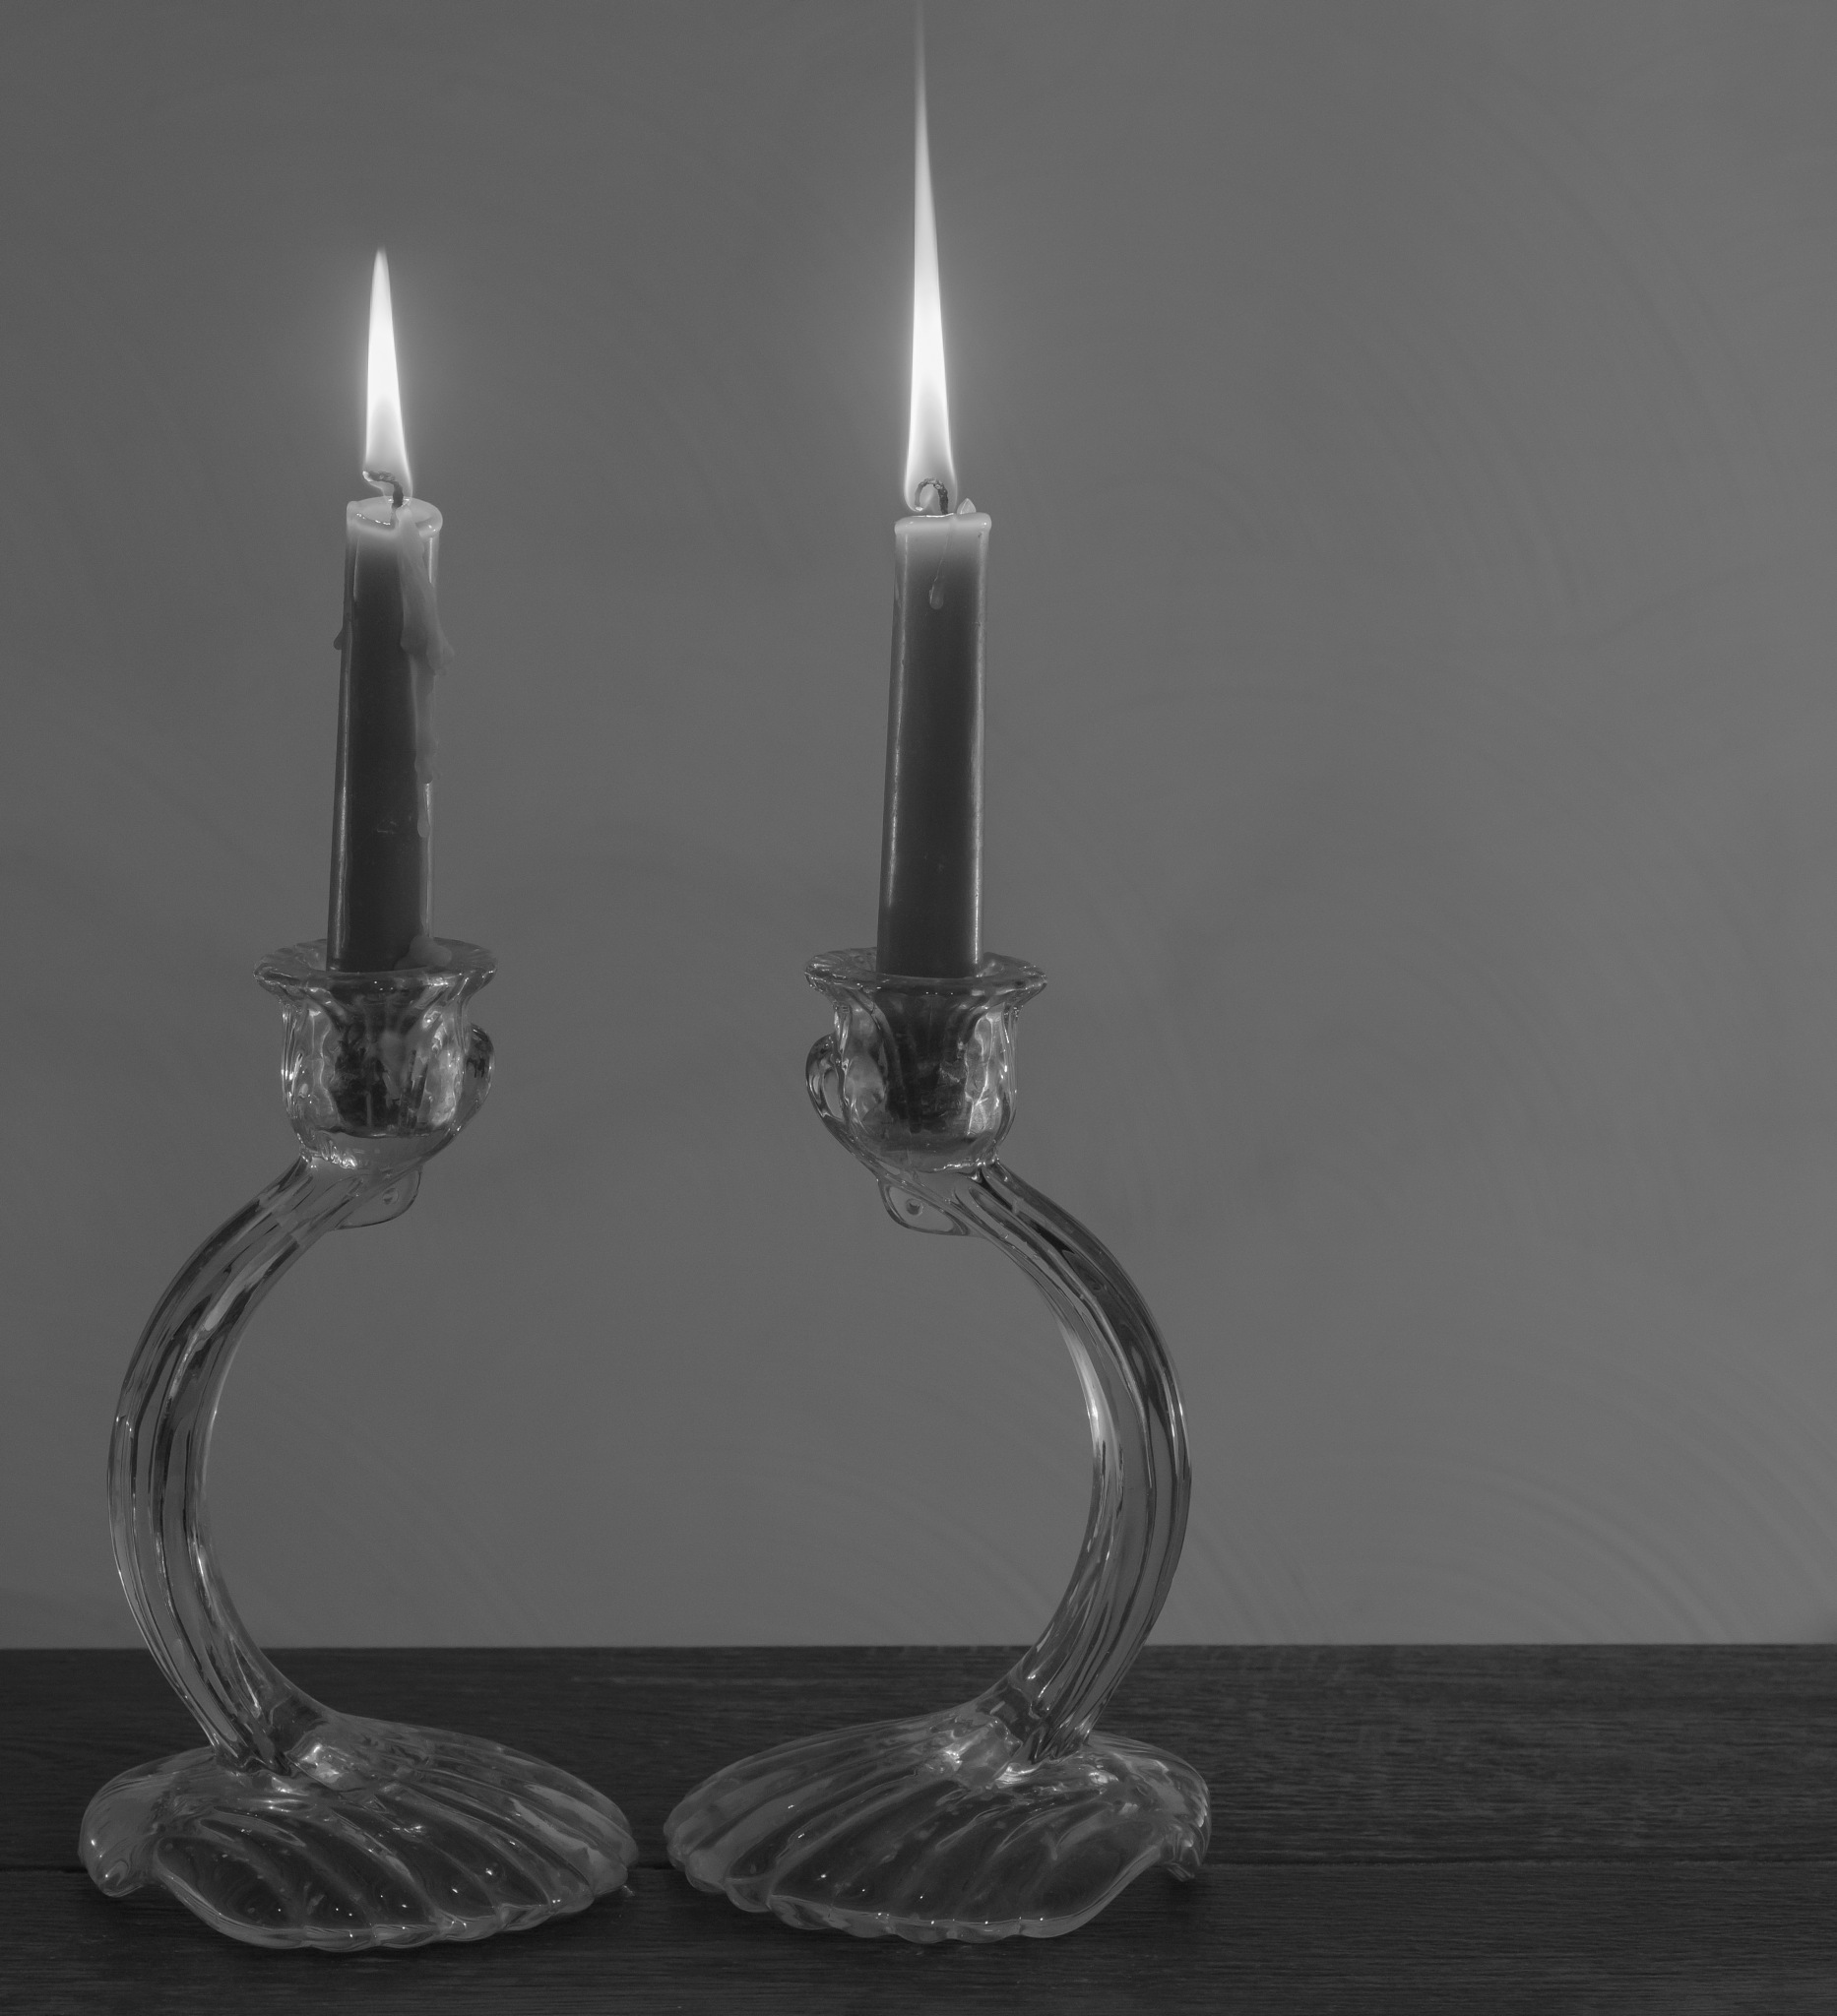 Two lit candles by Stephen Sepan